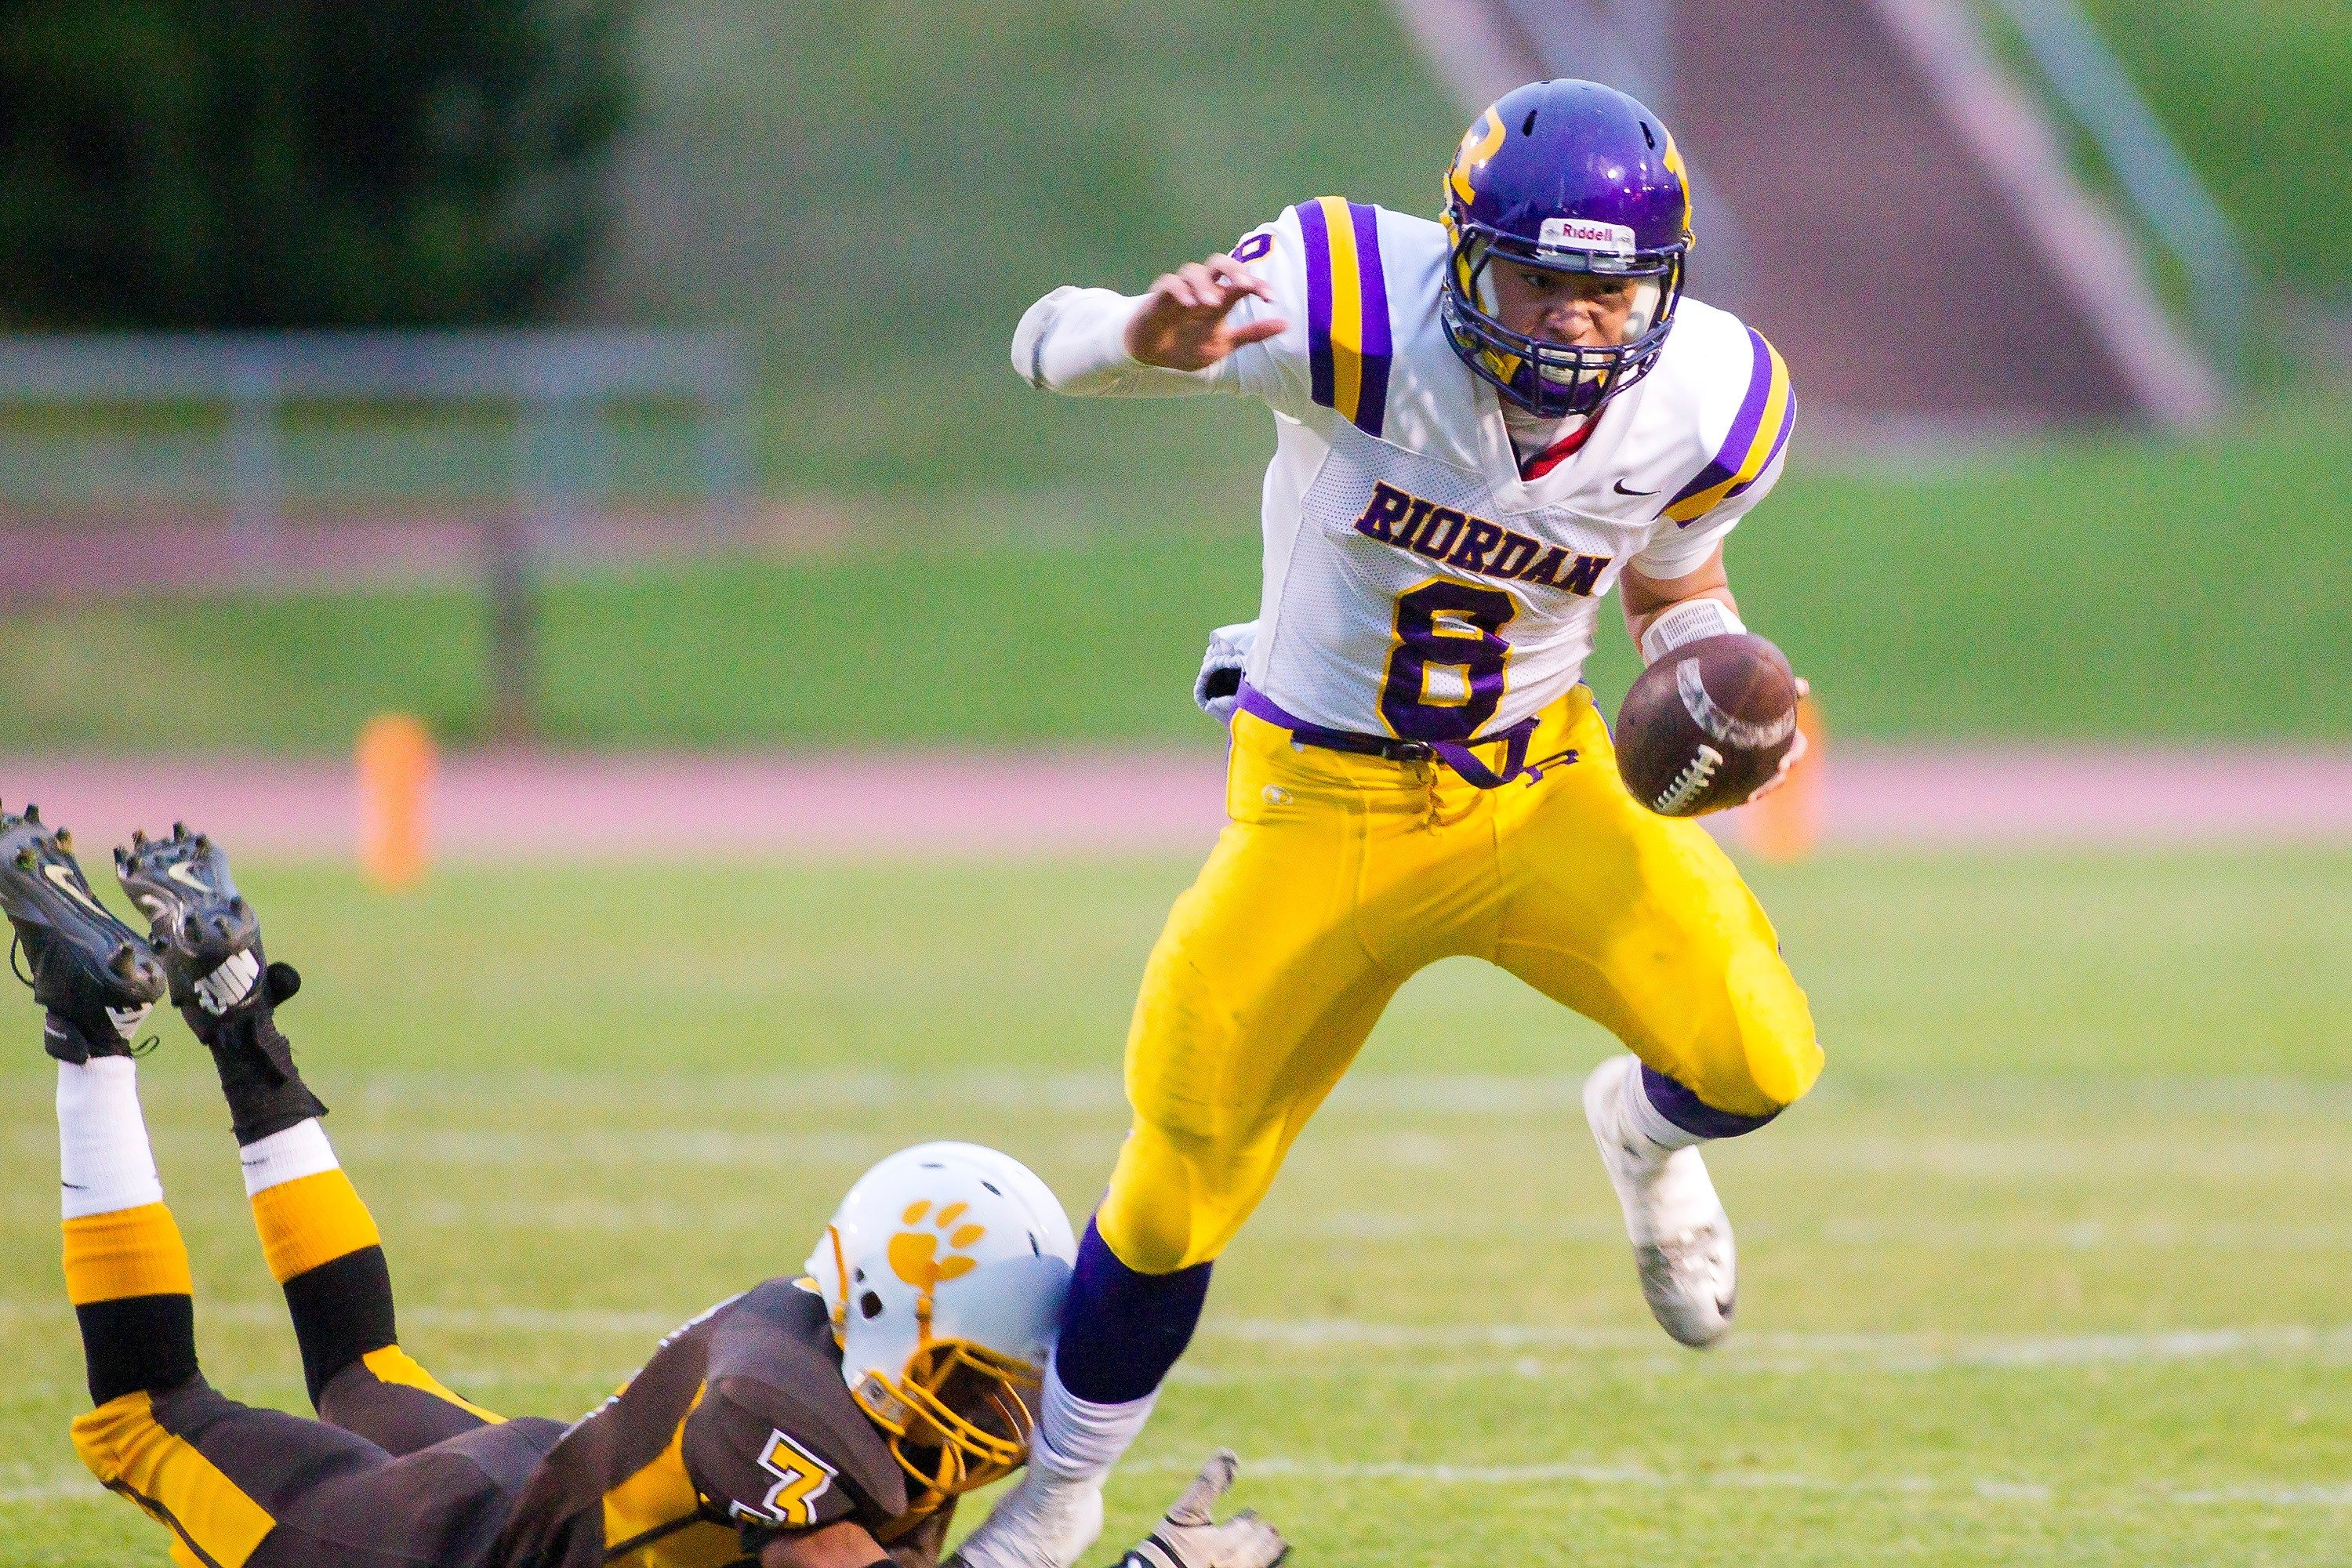 Eric Sun/Special to The S.F. ExaminerZach Masoli ran threw for 105 yards and also ran for 105 yards in leading Riordan past Mission on Friday night.